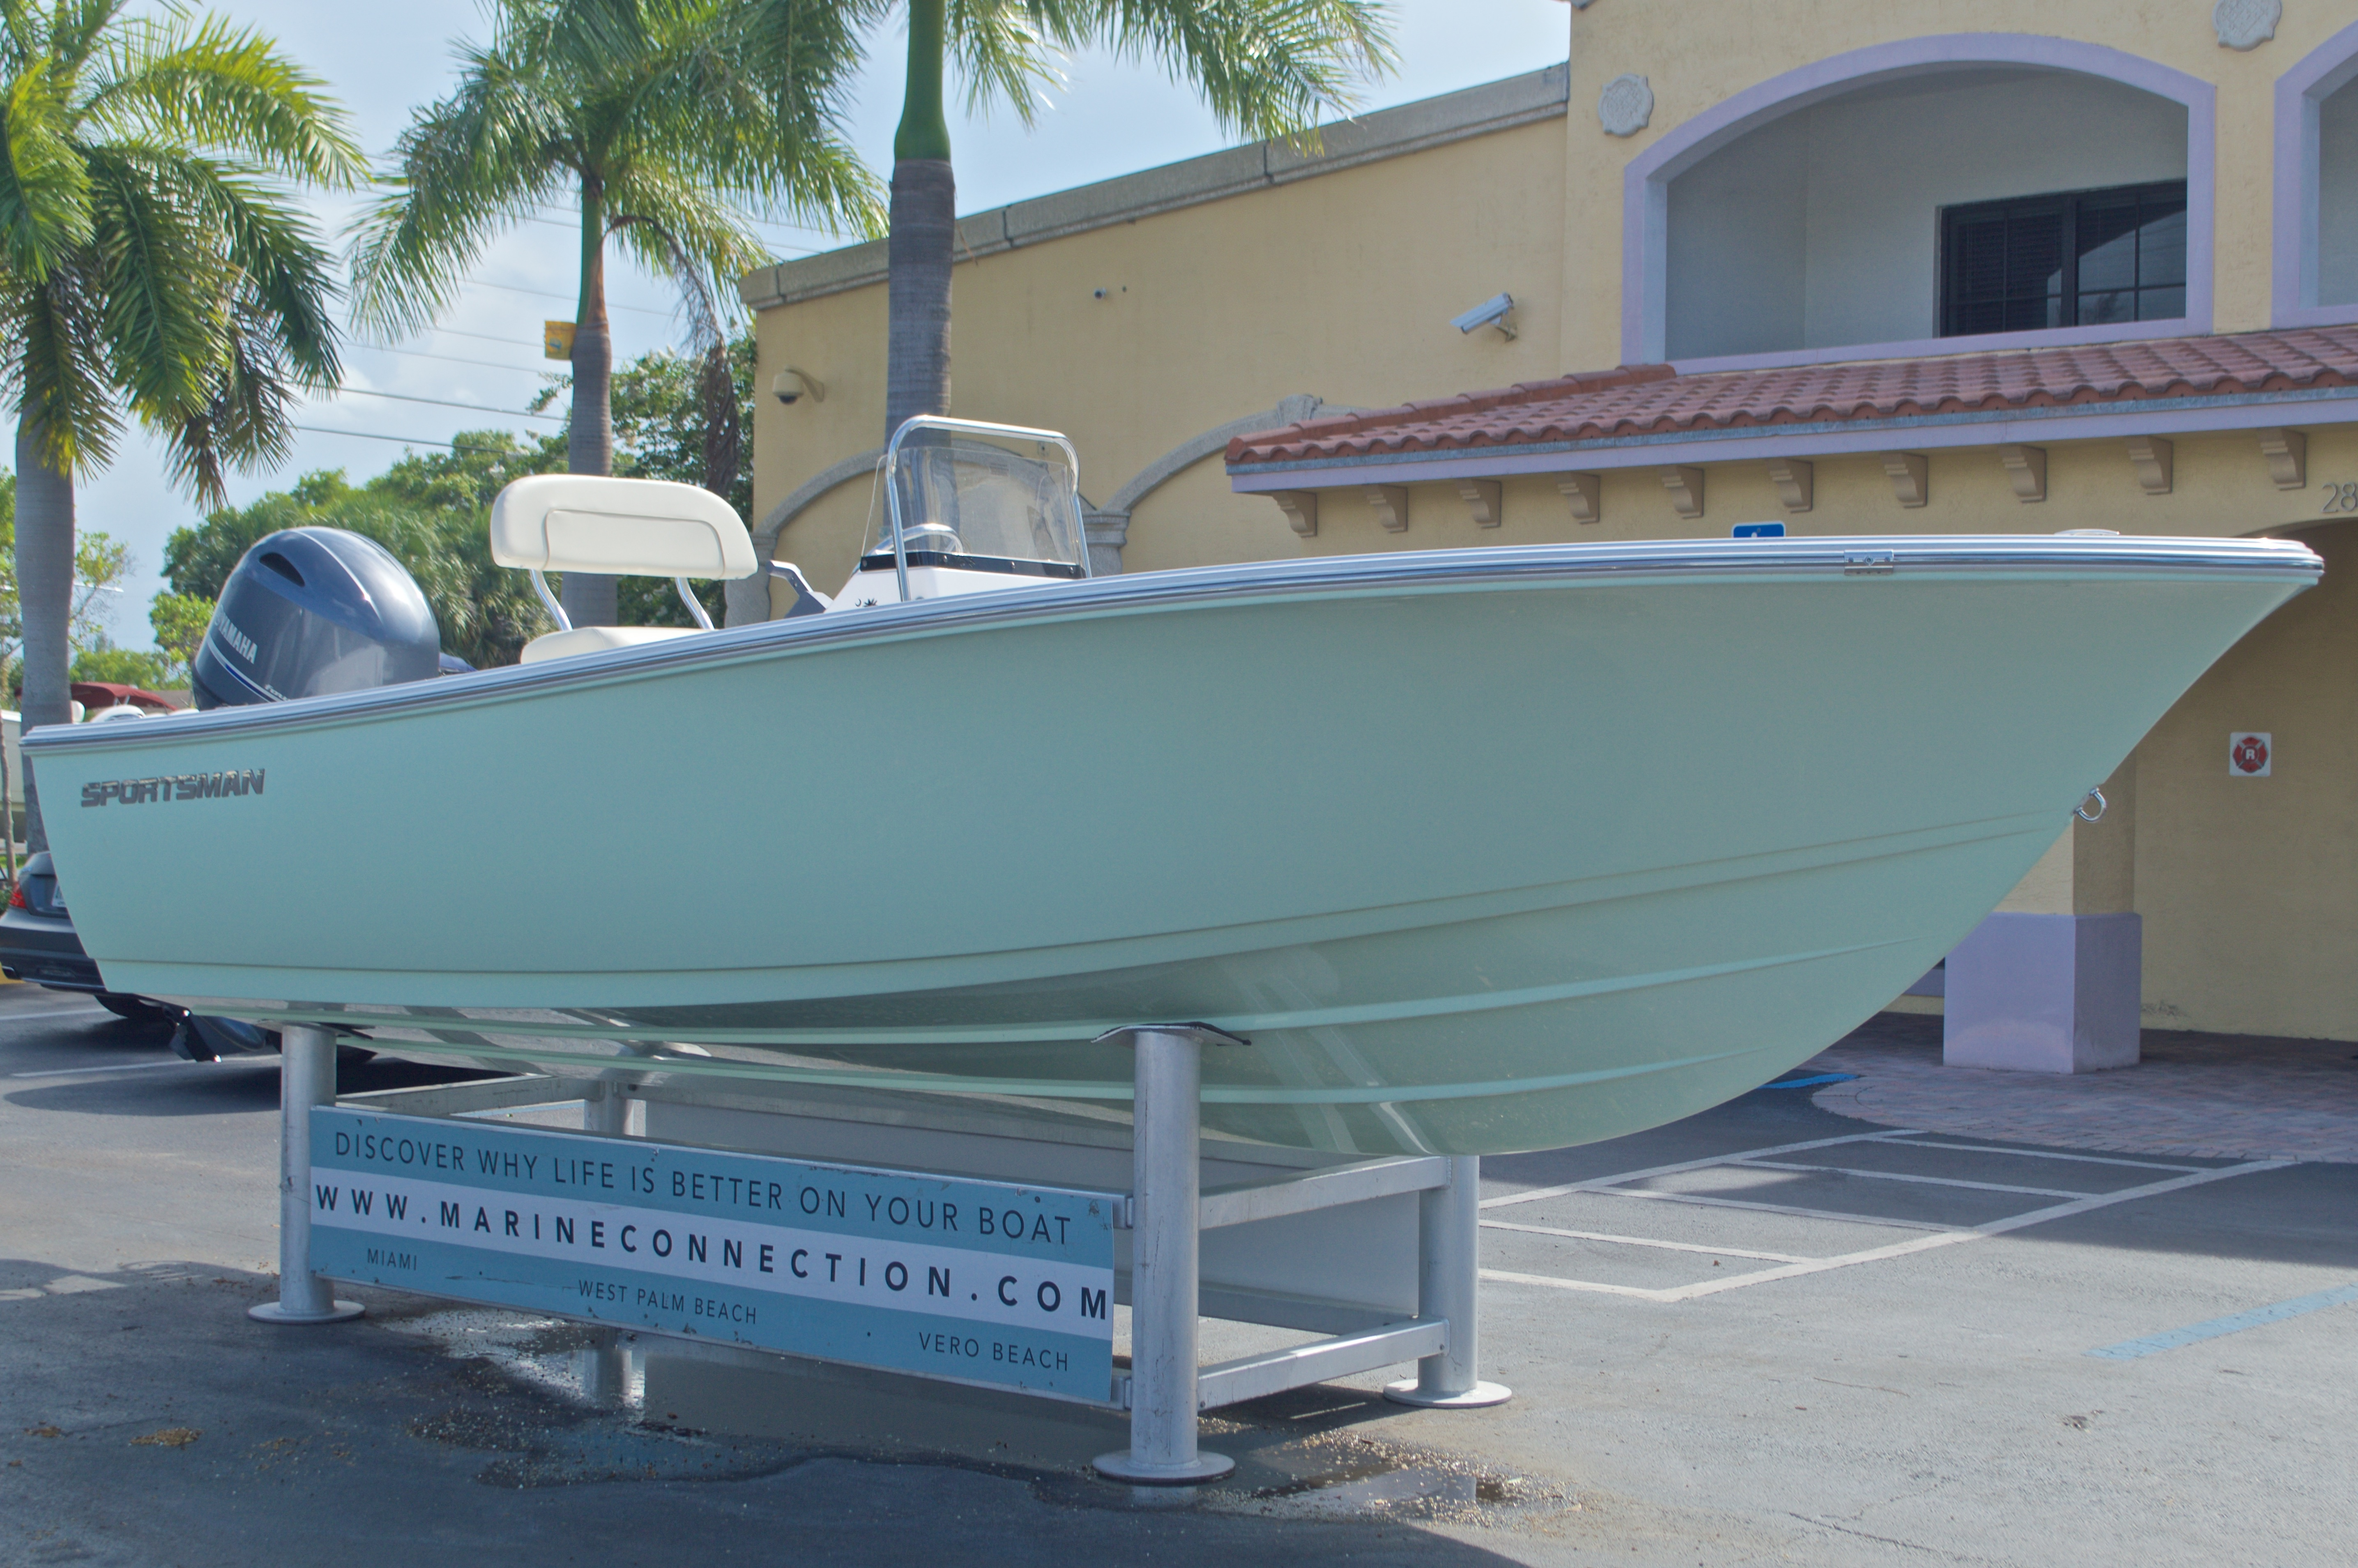 Thumbnail 1 for New 2017 Sportsman 19 Island Reef boat for sale in West Palm Beach, FL